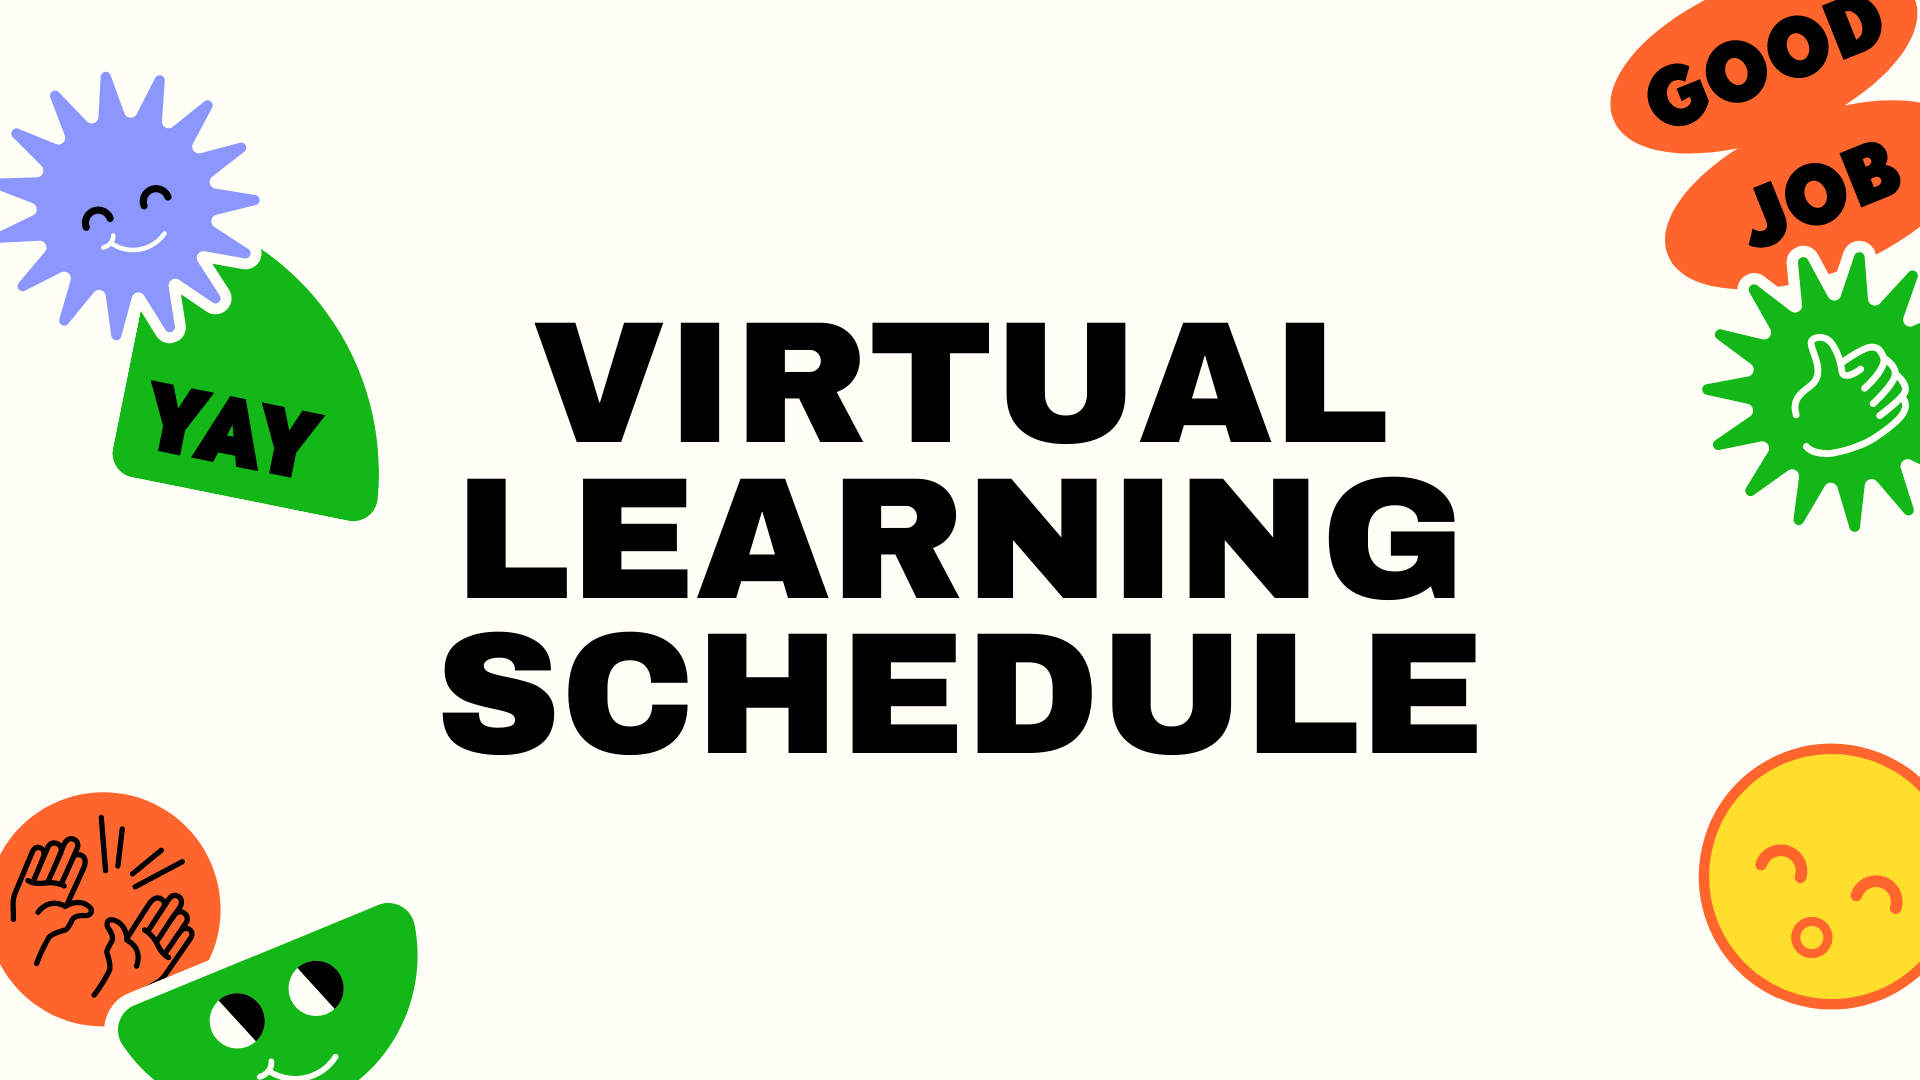 Inperson and Virtual Learning Schedule